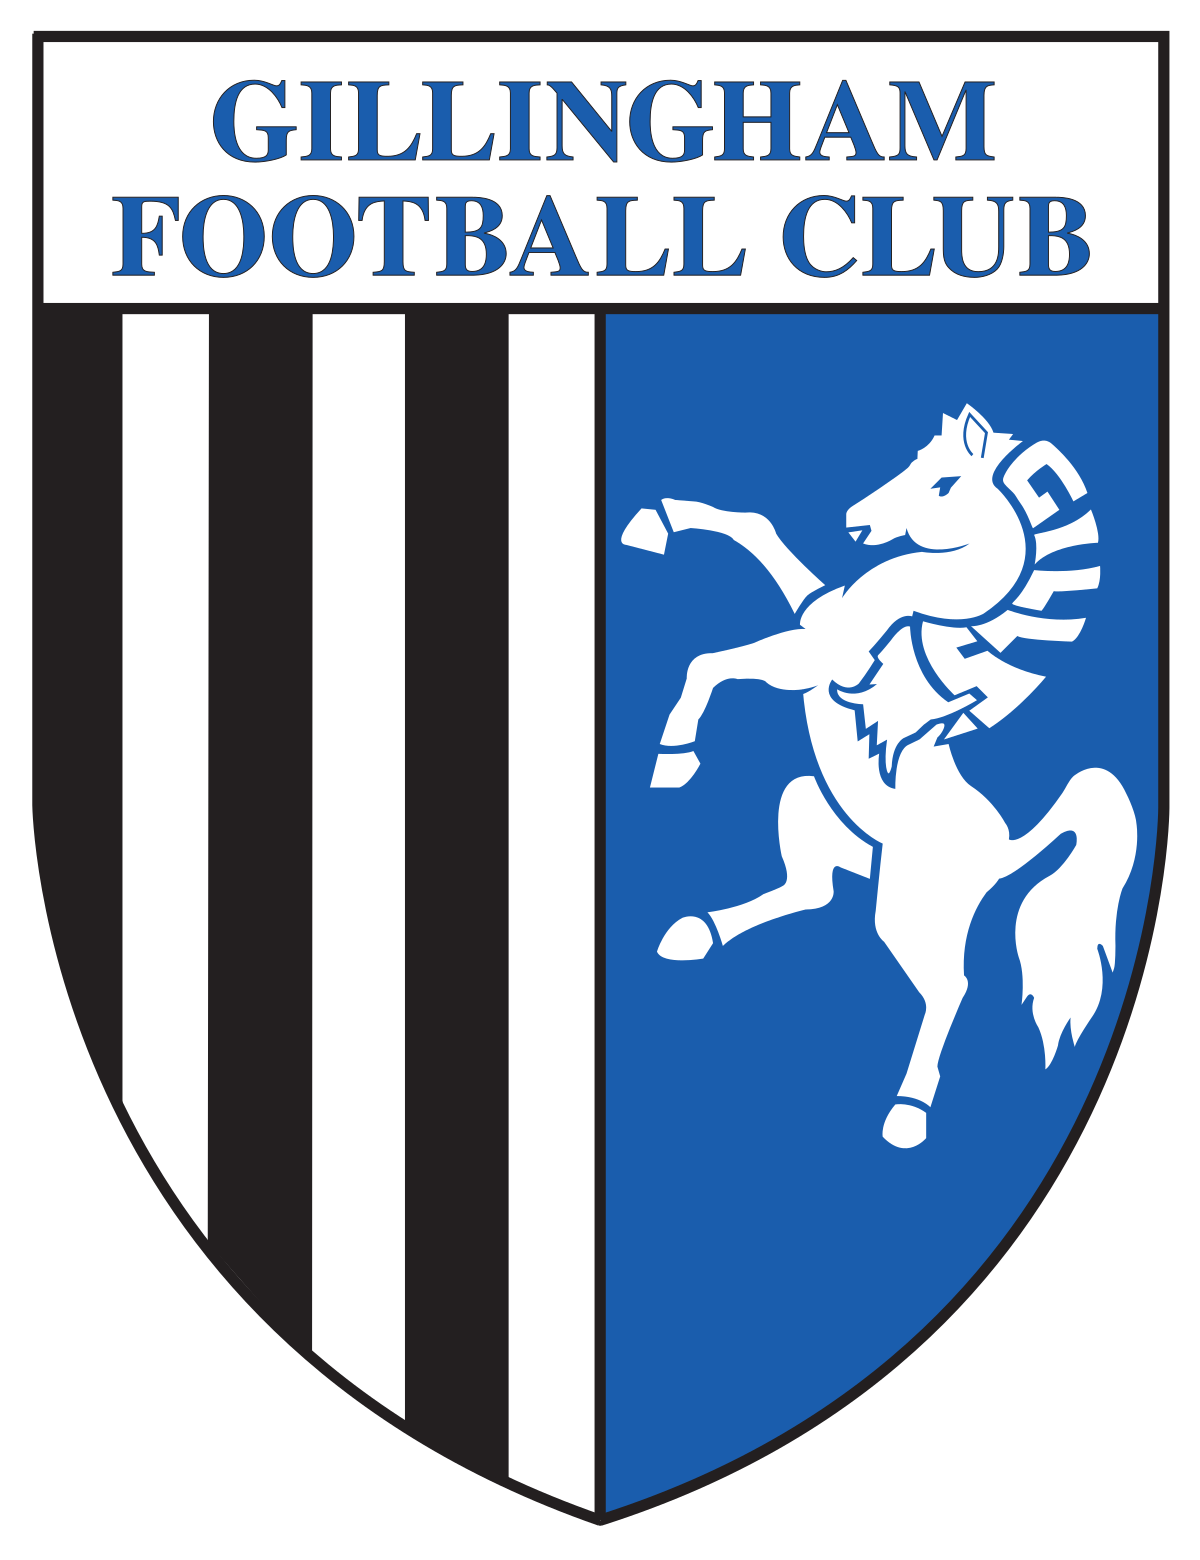 Gillingham Football Club